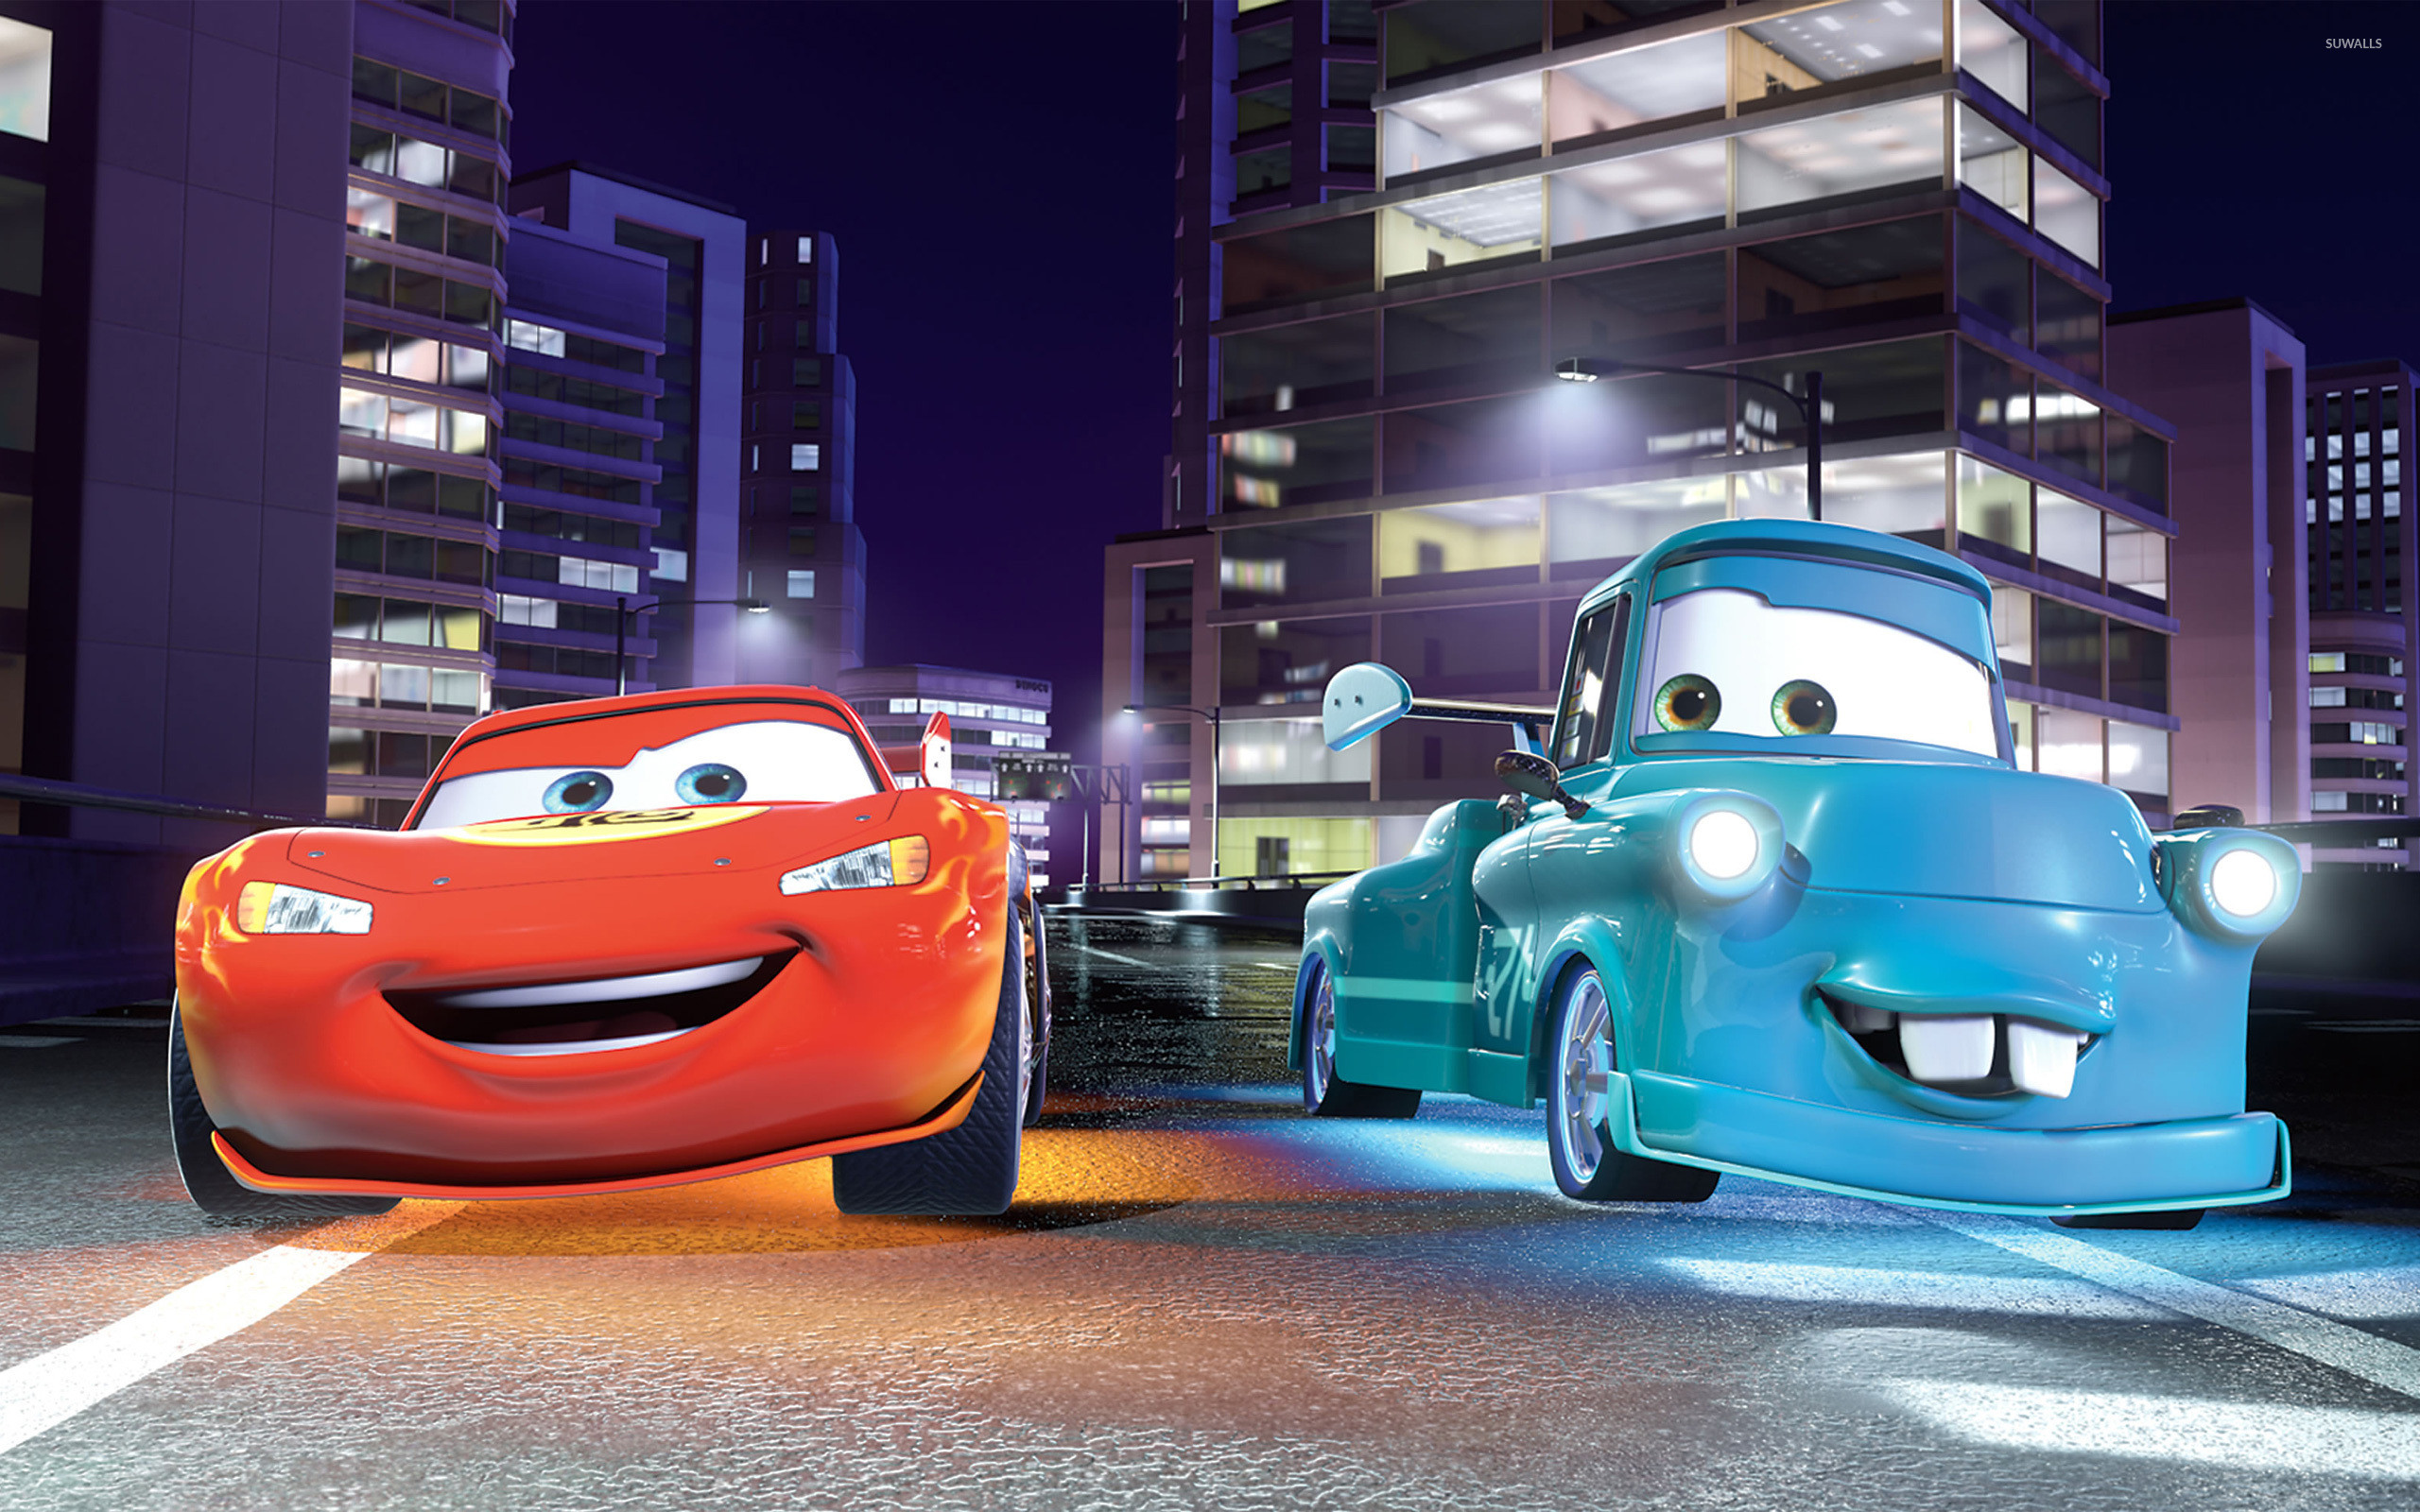 Res: 2560x1600, Lightning McQueen and Mater - Cars wallpaper